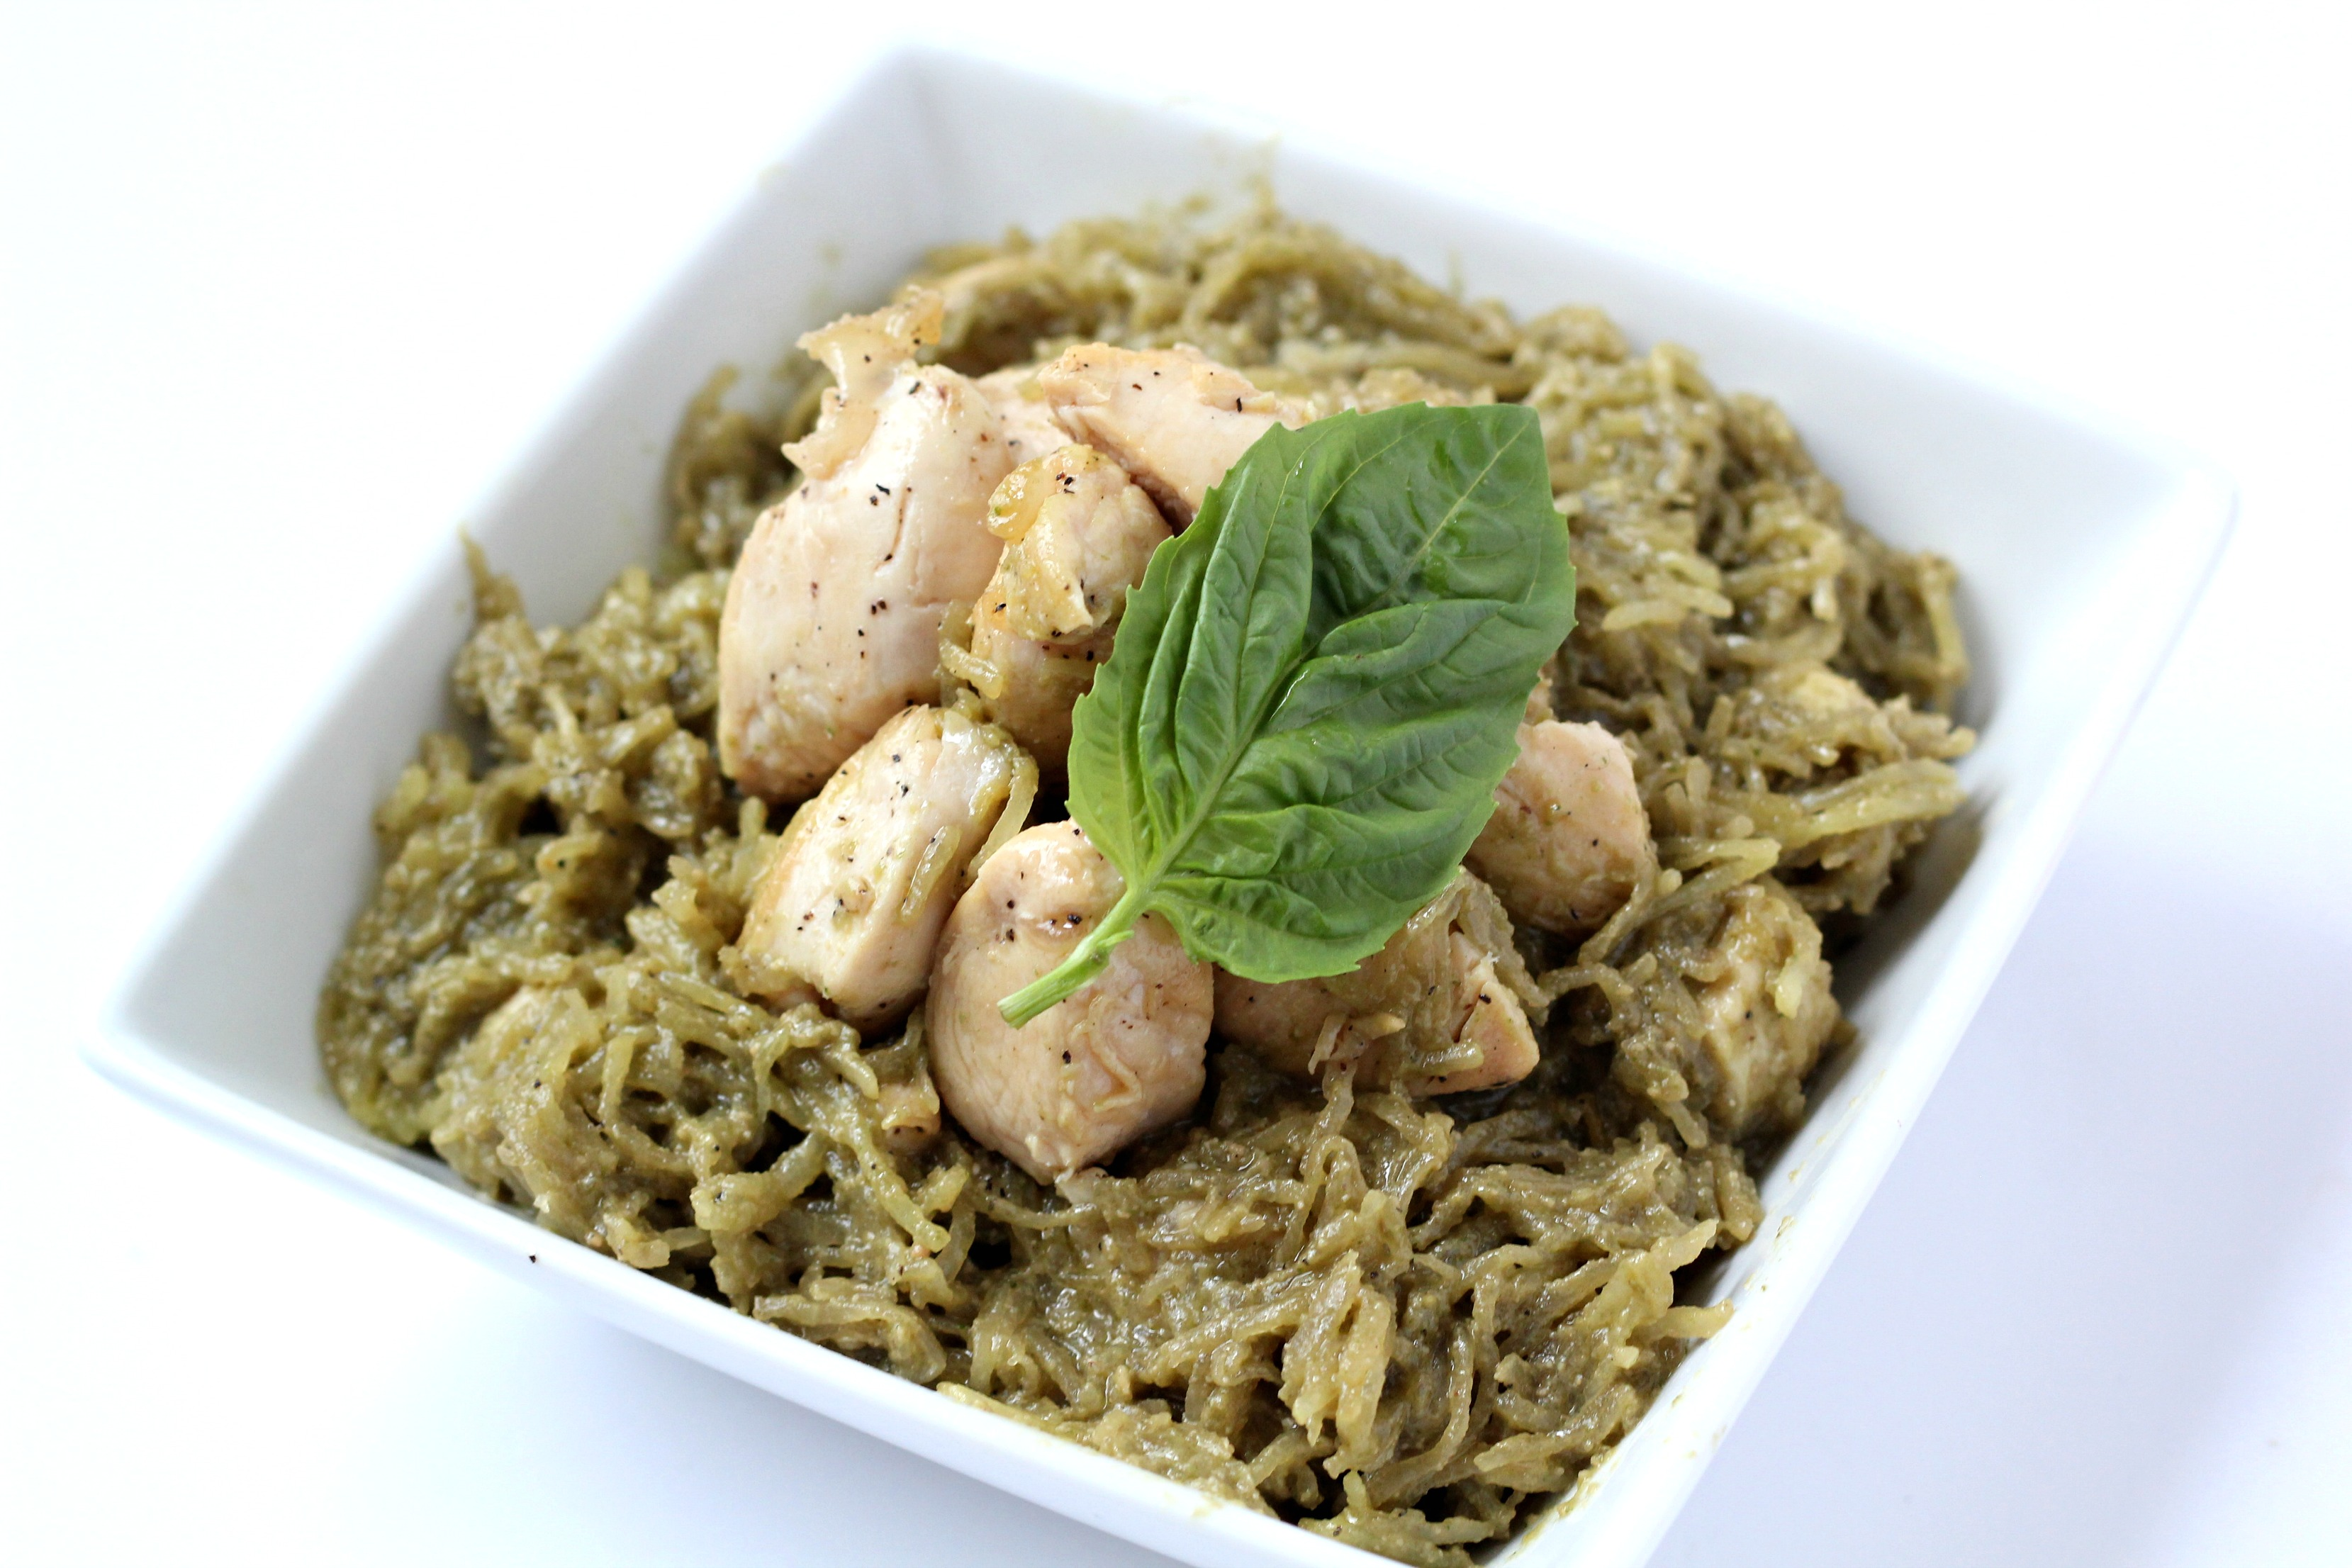 Paleo Pesto Spaghetti Squash with Chicken is one of my favorite meal prep meals. It's simple to make, super flavorful, and Whole30 compliant.